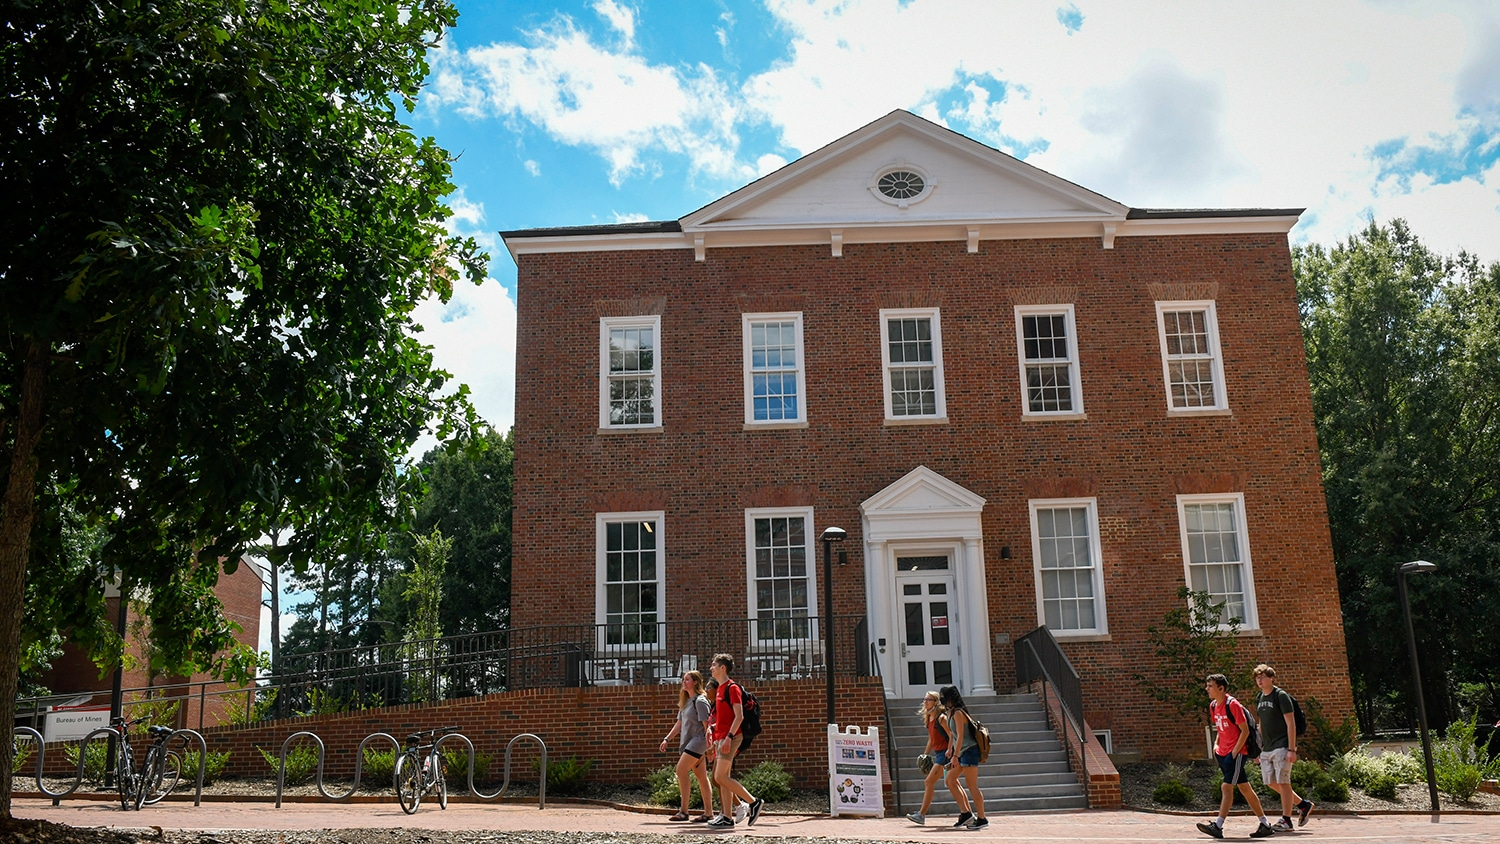 Students walk past the Bureau of Mines building on NC State's campus